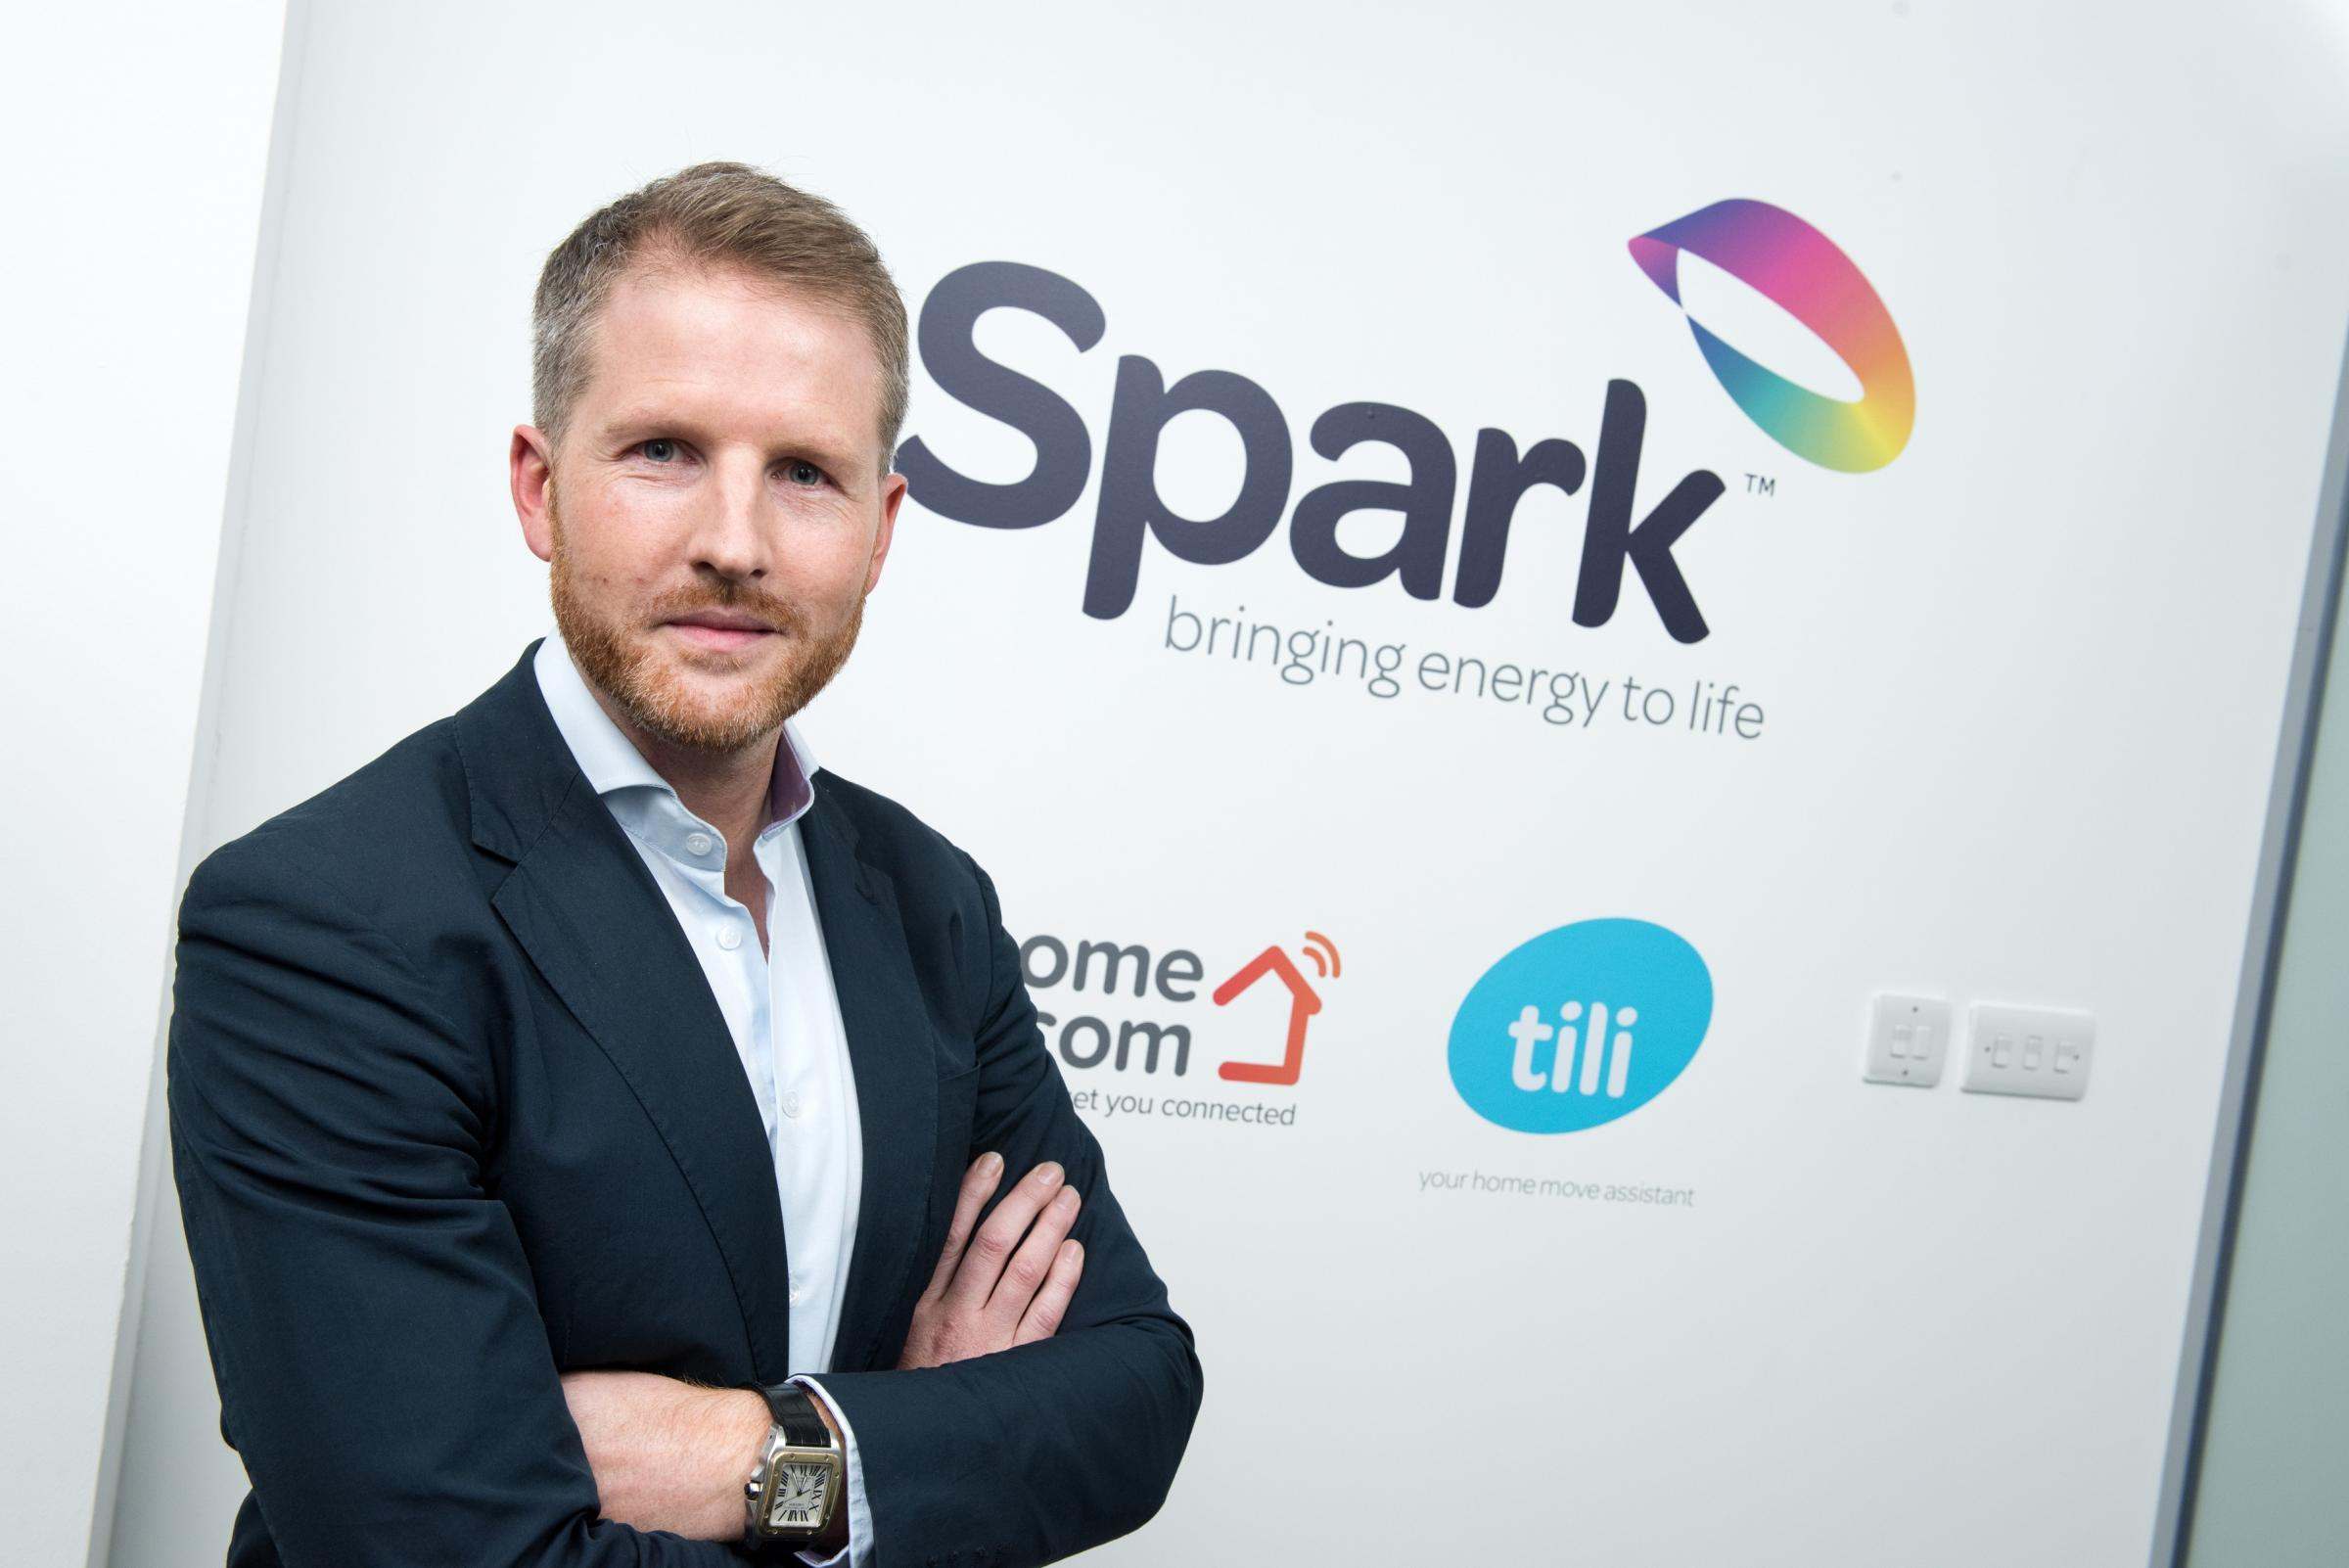 Chris Gauld, chief executive, Spark Energy